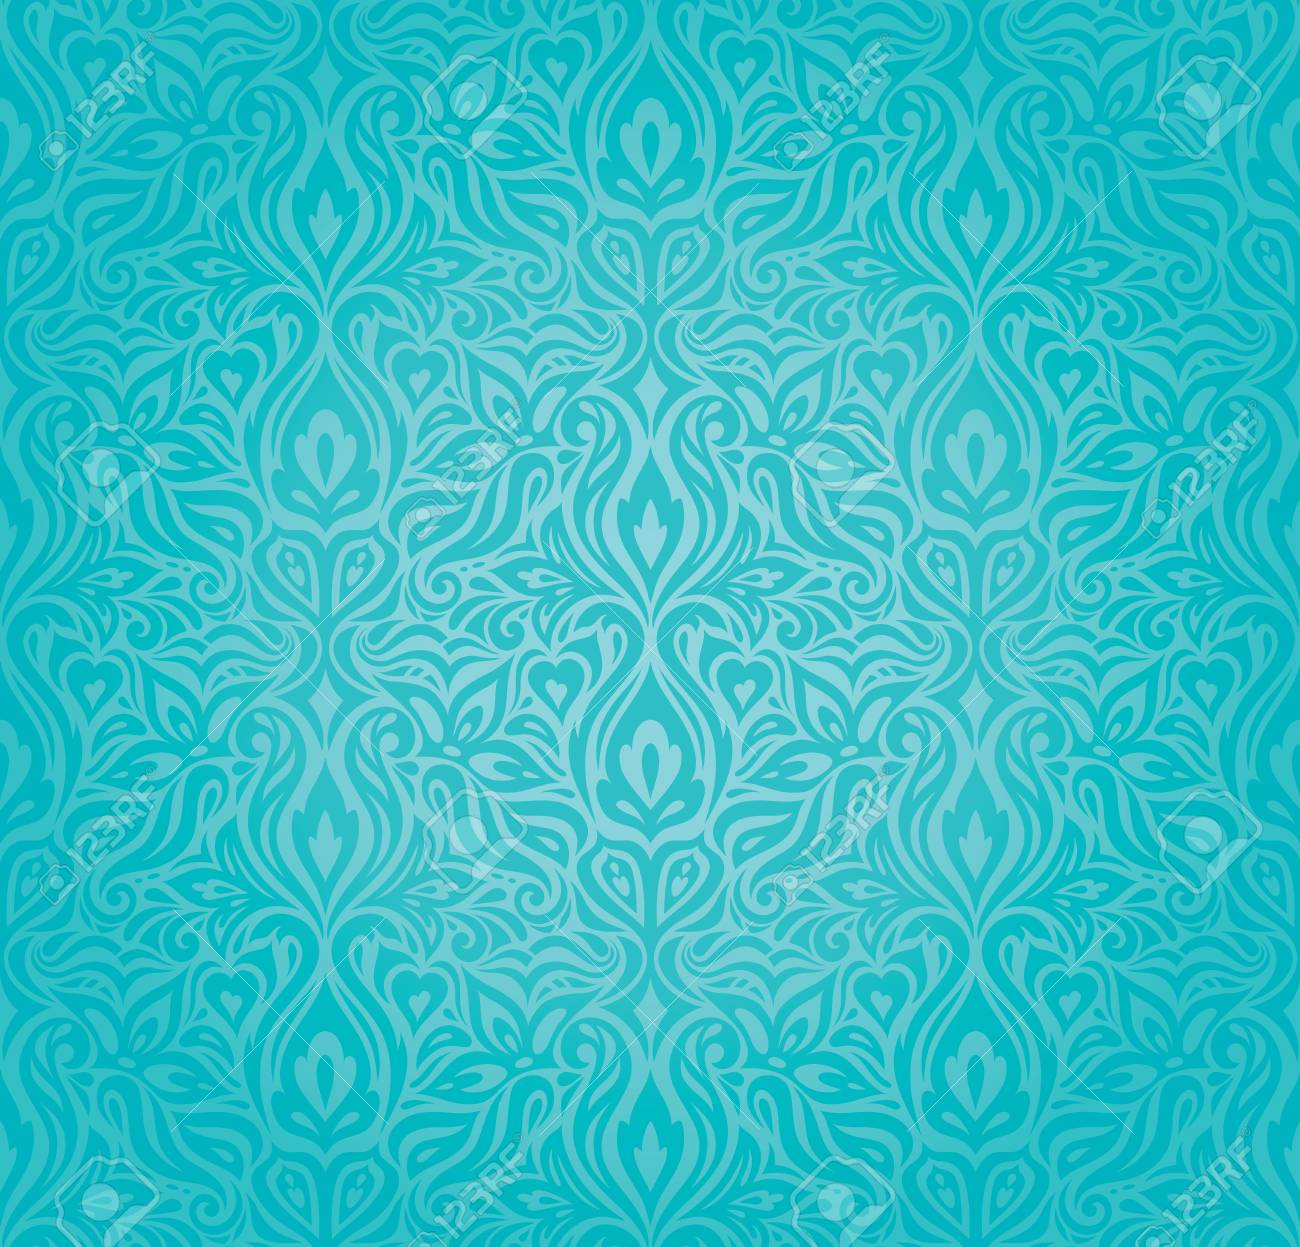 Turquoise Floral Holiday Vintage Background Design Trendy Blue To